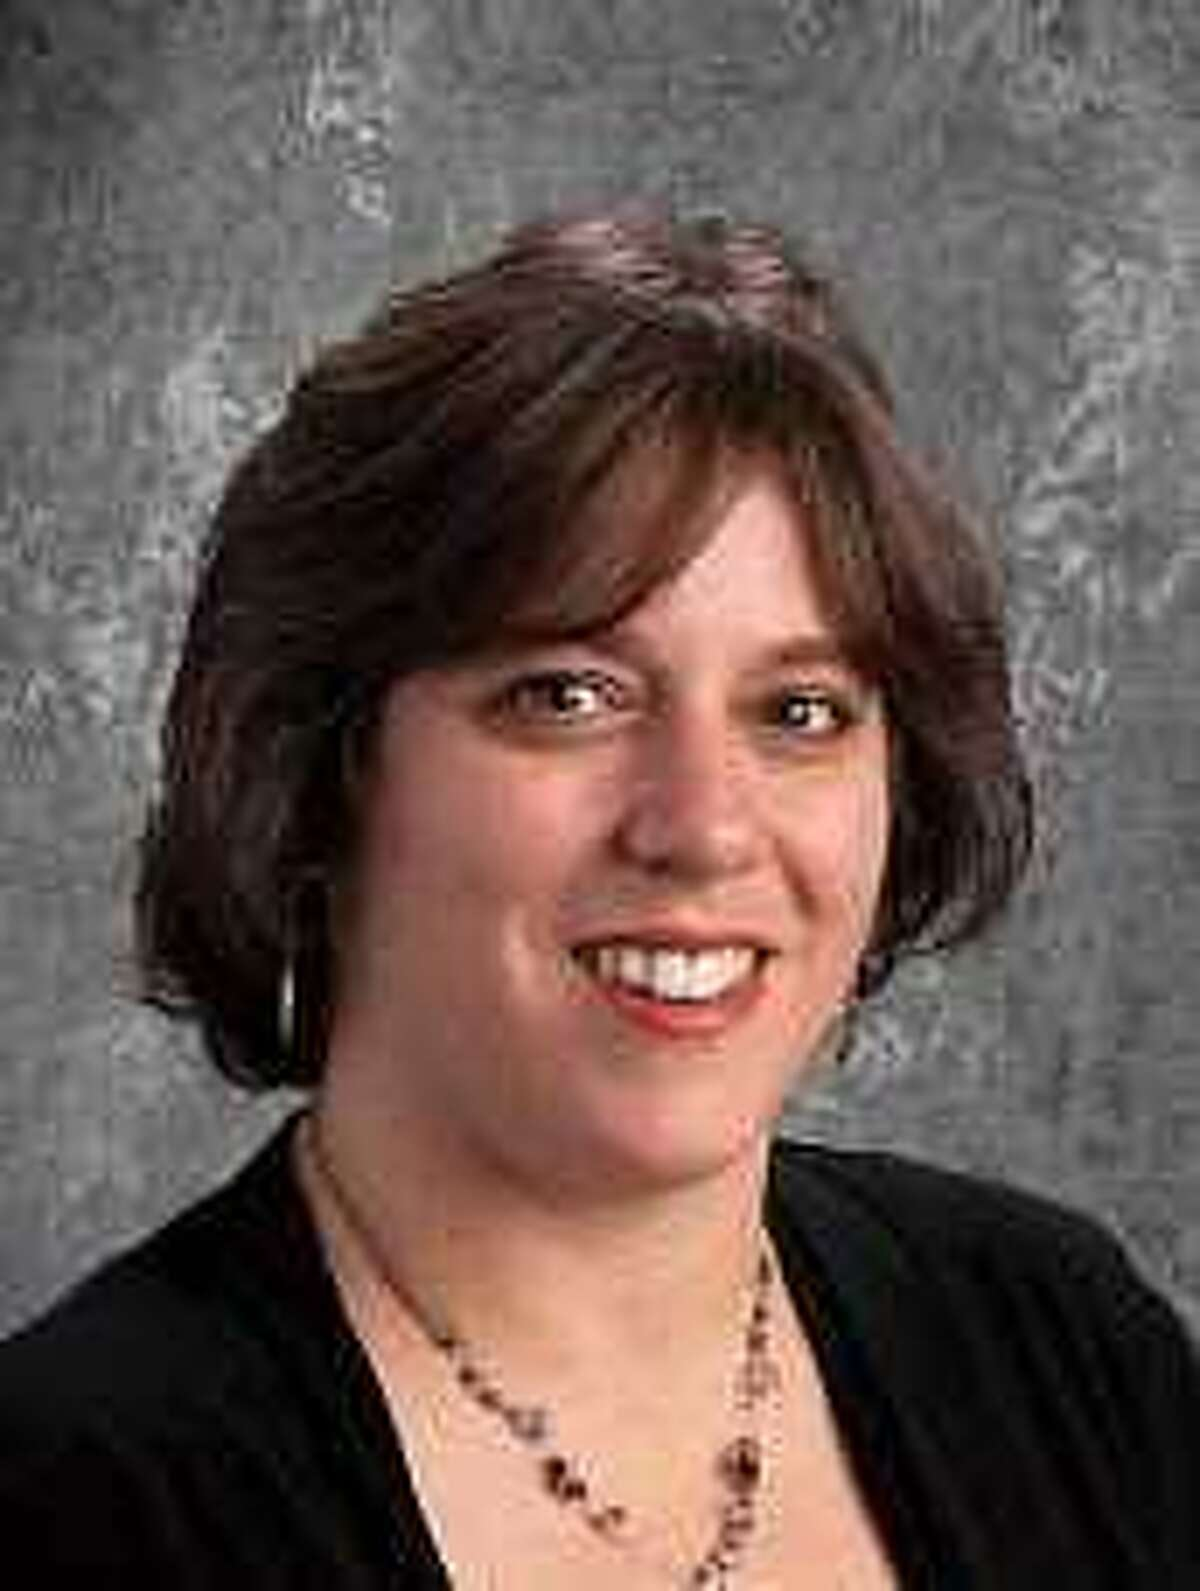 Principal Jennifer Olson earned $151,864.56 in 2020, making her the third highest paid educator in the district.